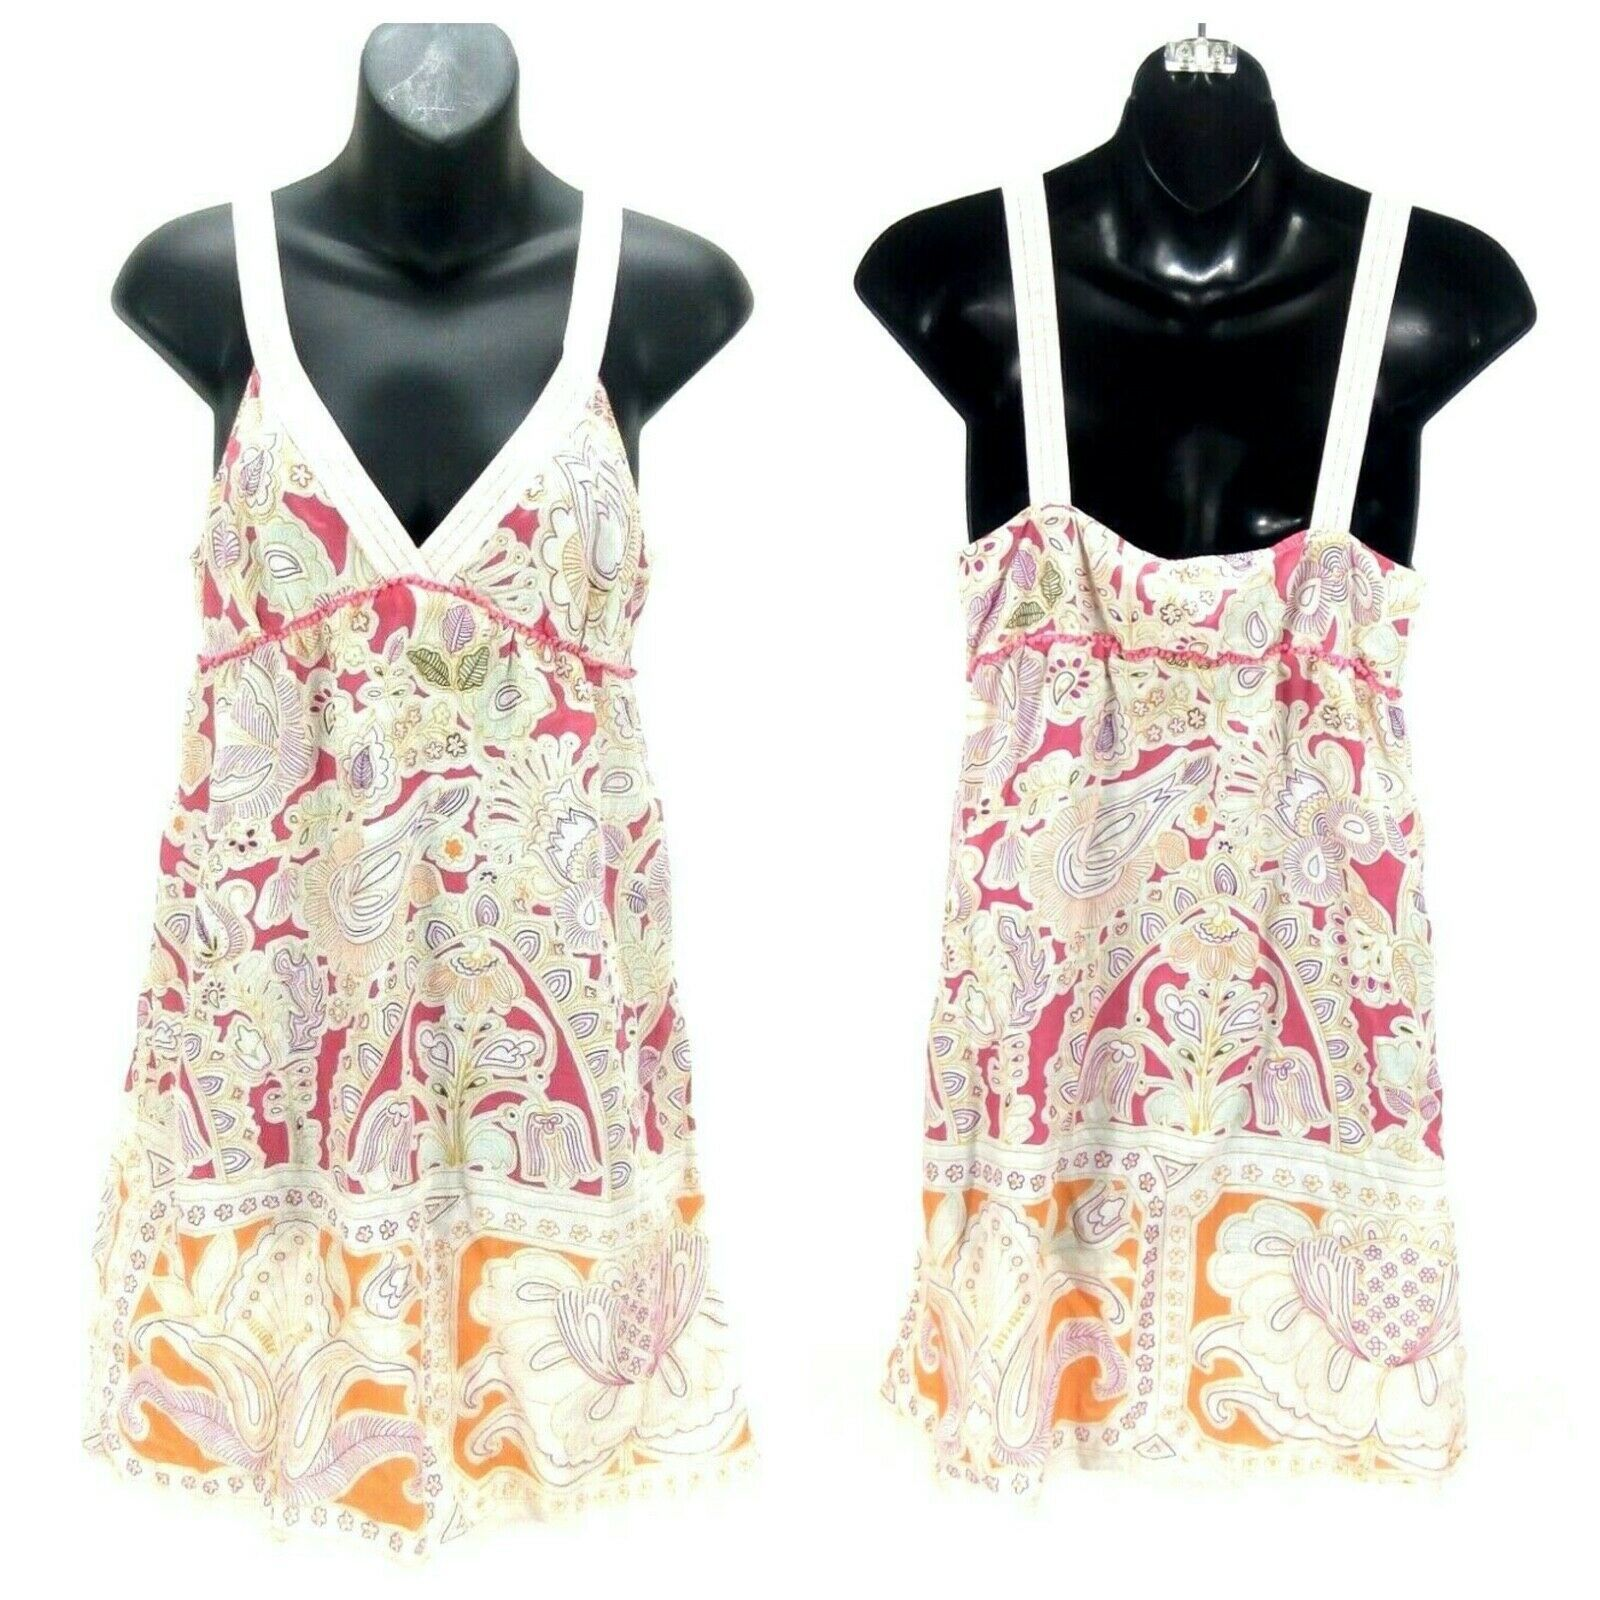 Primary image for Lilka Anthropologie Women Mini Dress Red/Pink Cotton Floral Sleeveless A-line XS